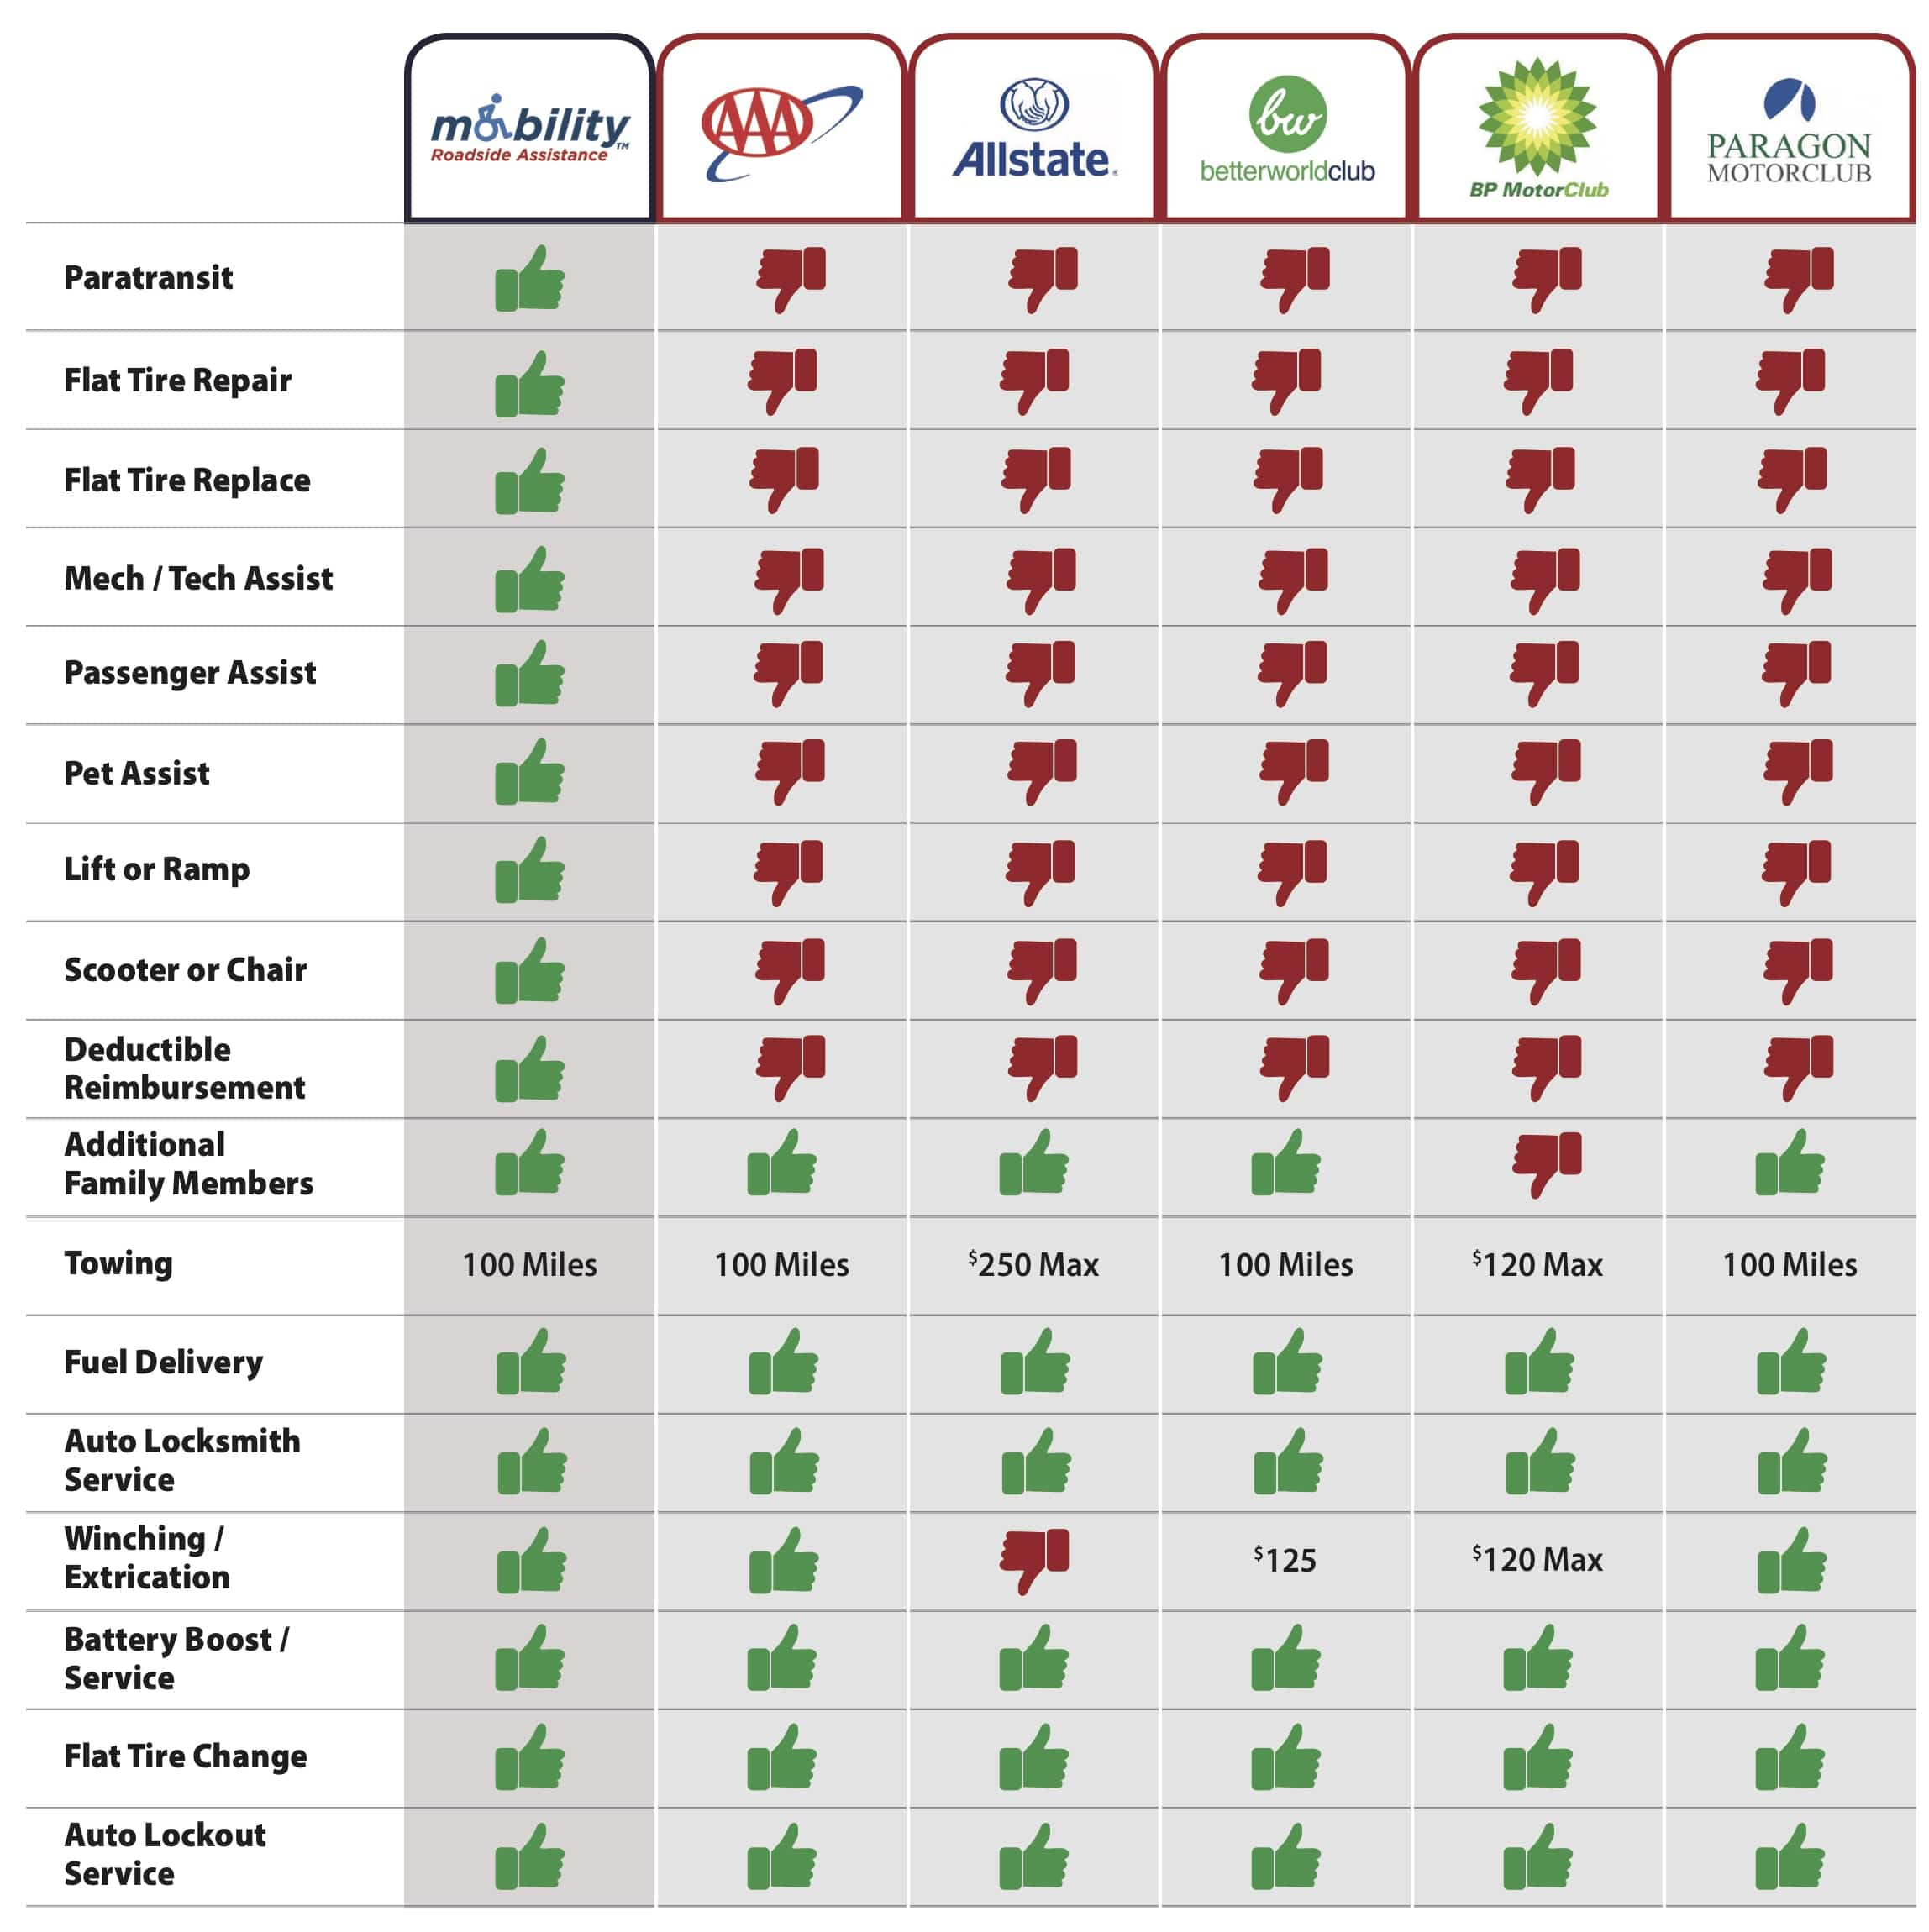 See how Mobility Roadside Assistance compares to other services